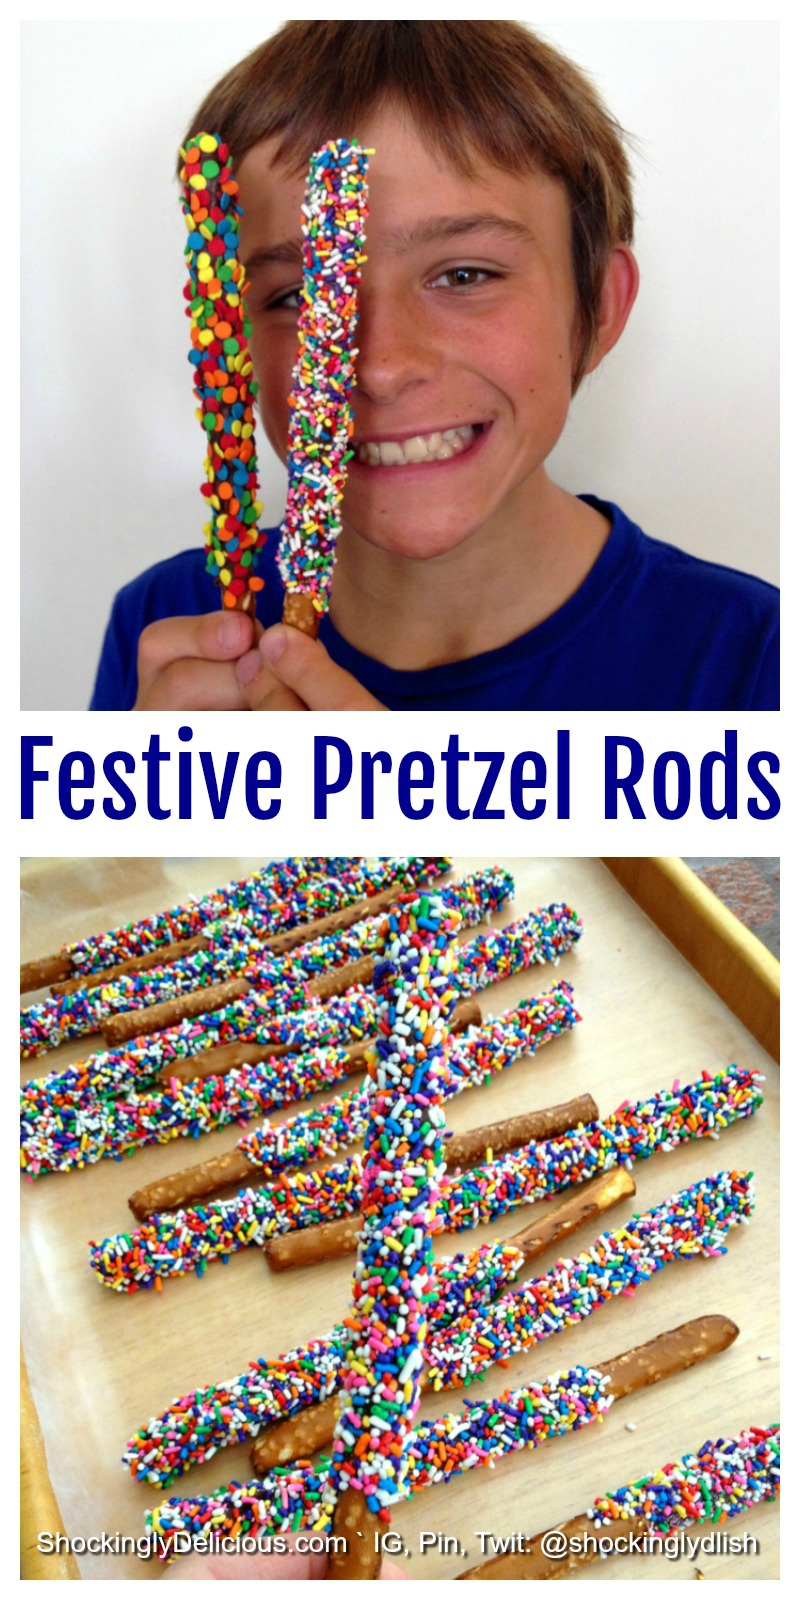 Festive Pretzel Rods Recipe on ShockinglyDelicious.com